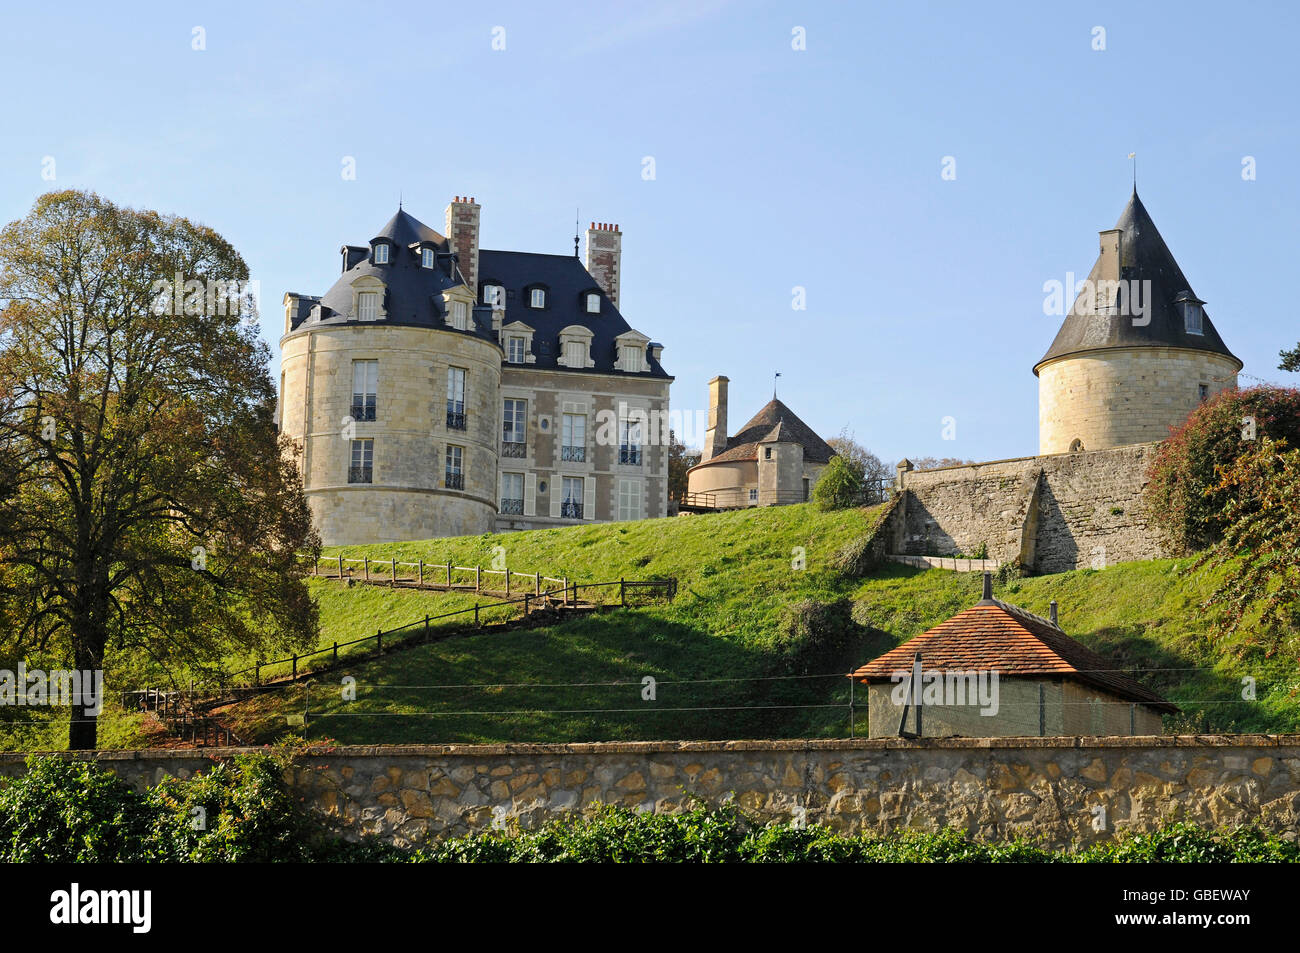 Apremont Sur Allier Chateau Castle Apremont Sur Allier Bourges Cher Centre France